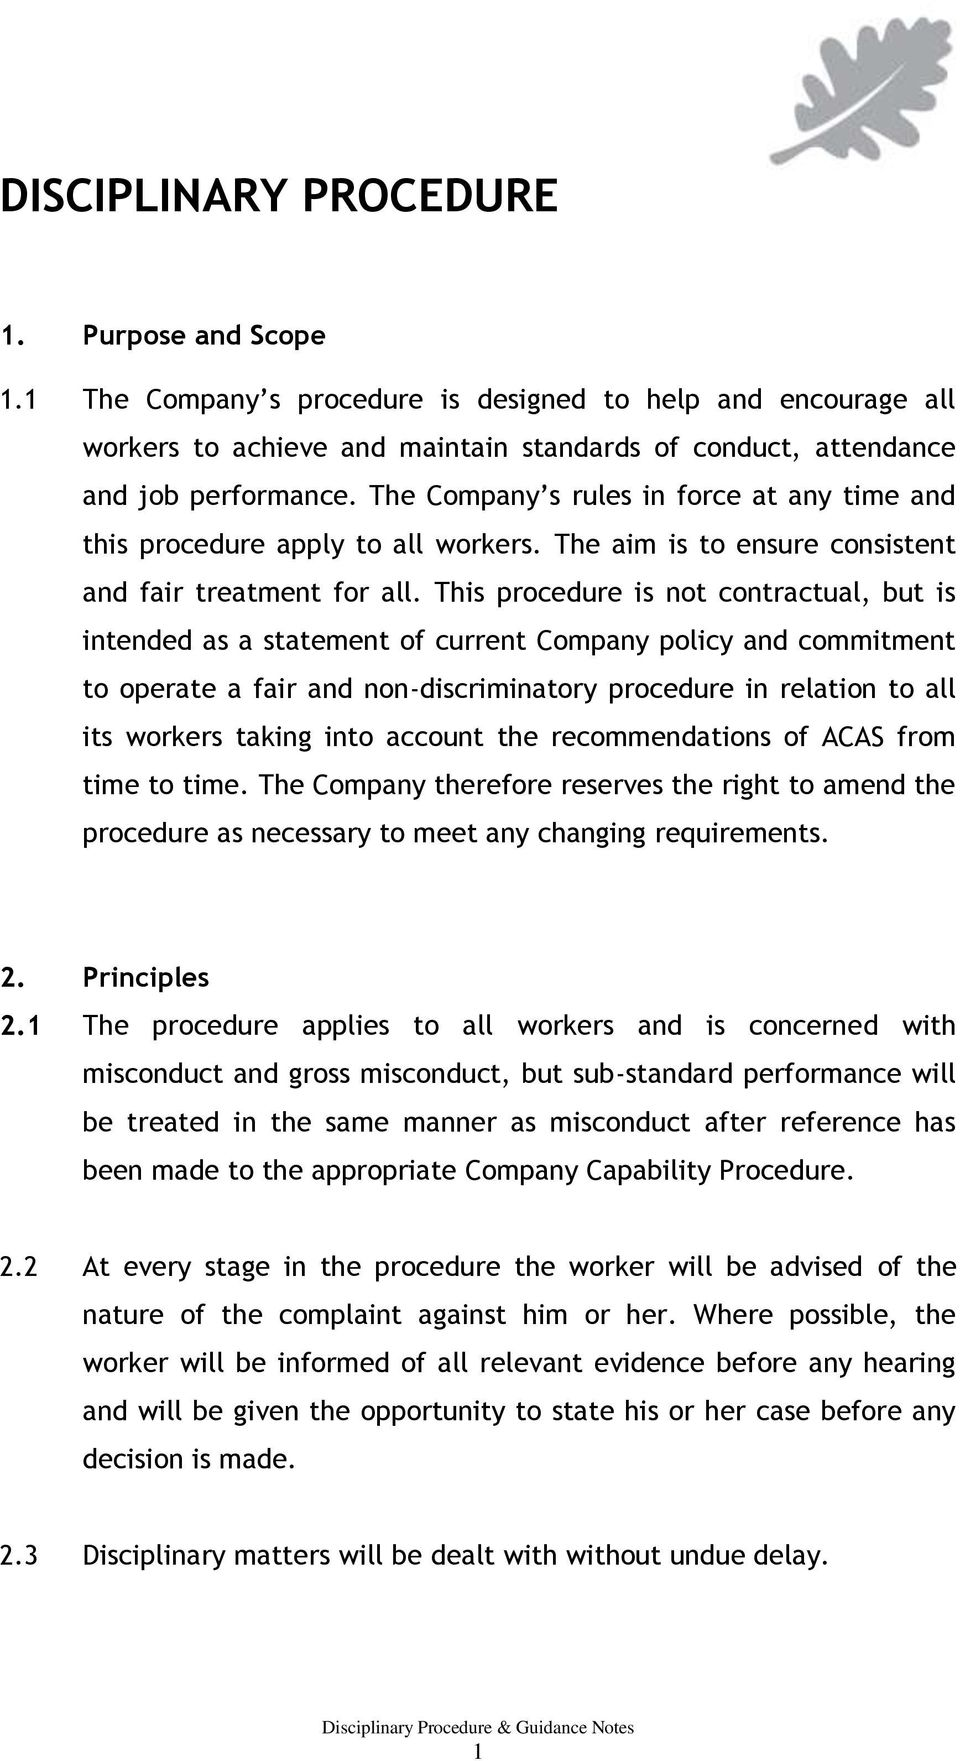 This procedure is not contractual, but is intended as a statement of current Company policy and commitment to operate a fair and non-discriminatory procedure in relation to all its workers taking